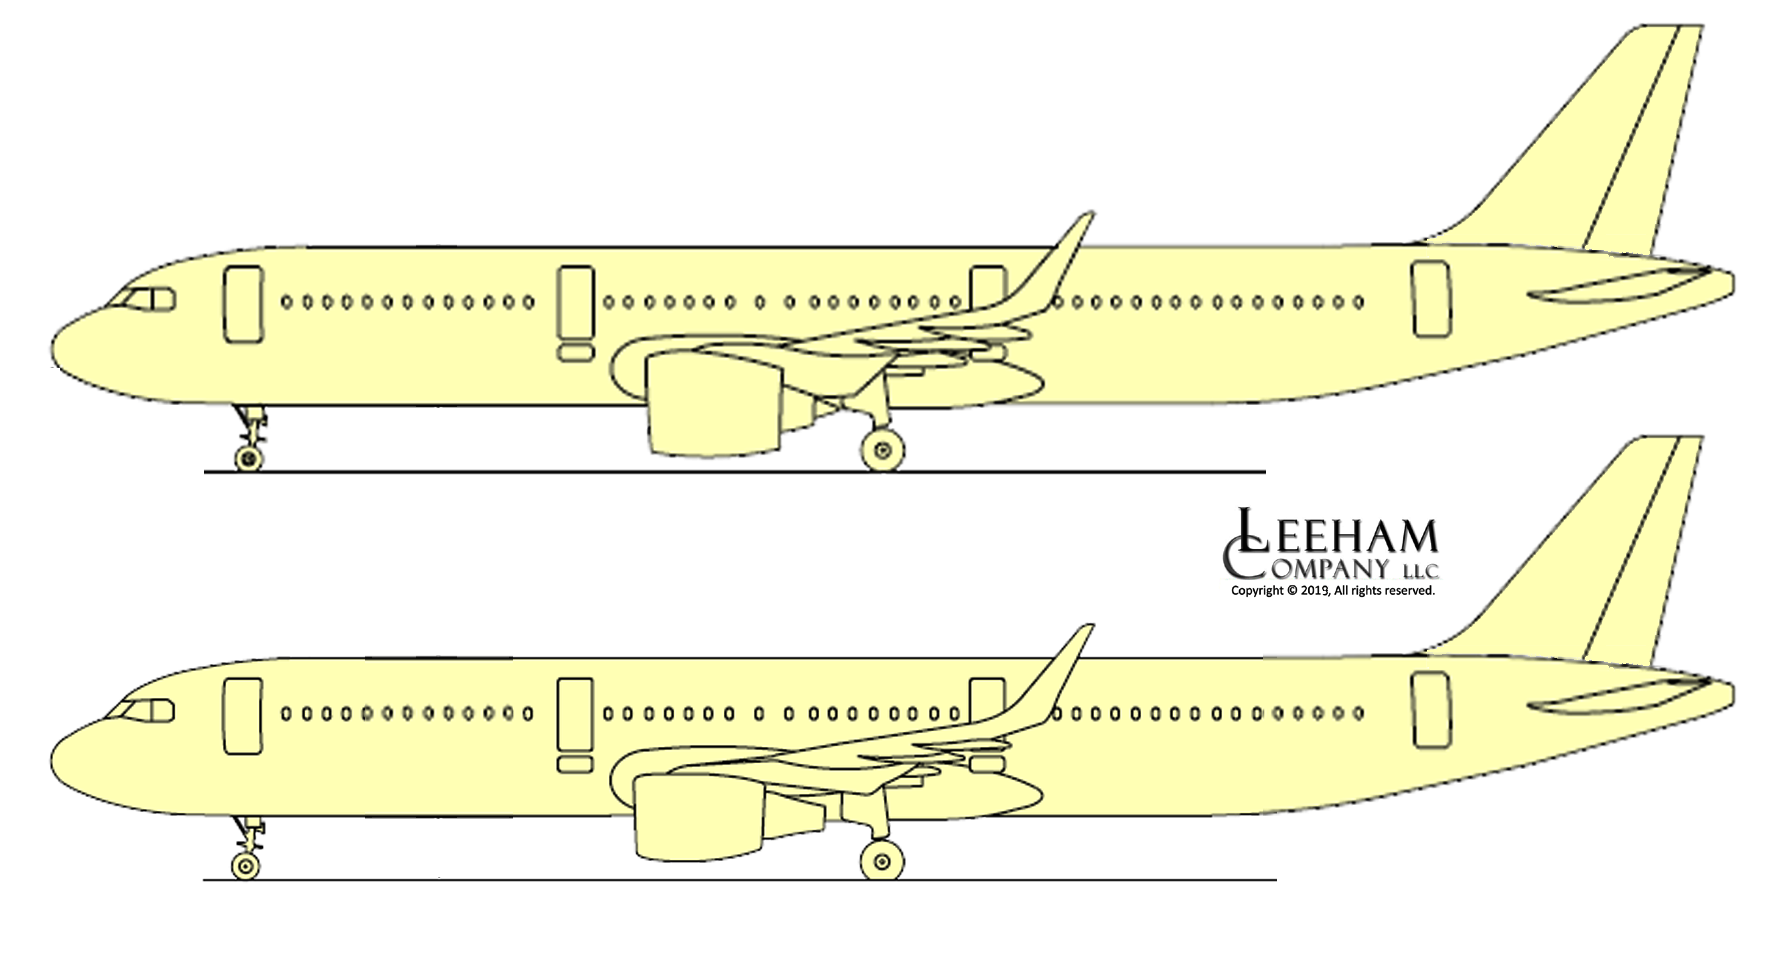 Bjorn's Corner: Airbus' A321neo has a pitch-up issue (now